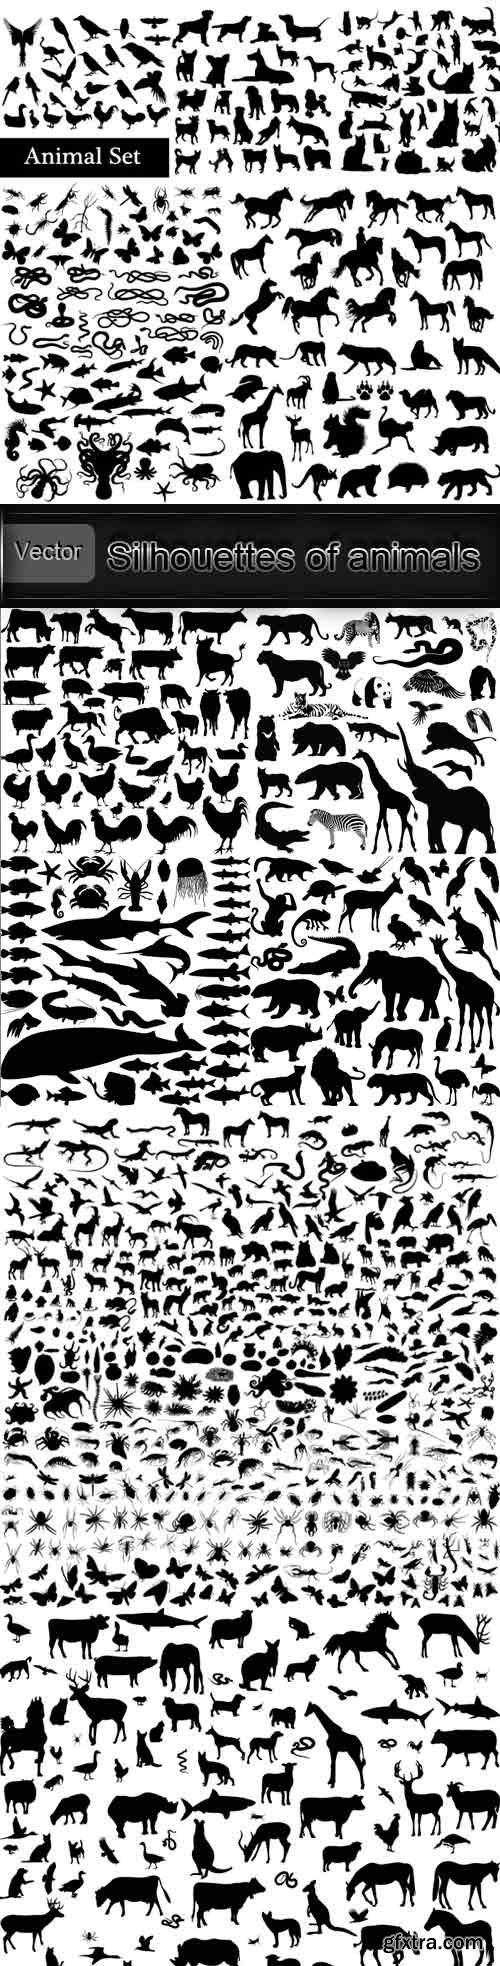 Silhouettes of animals and birds